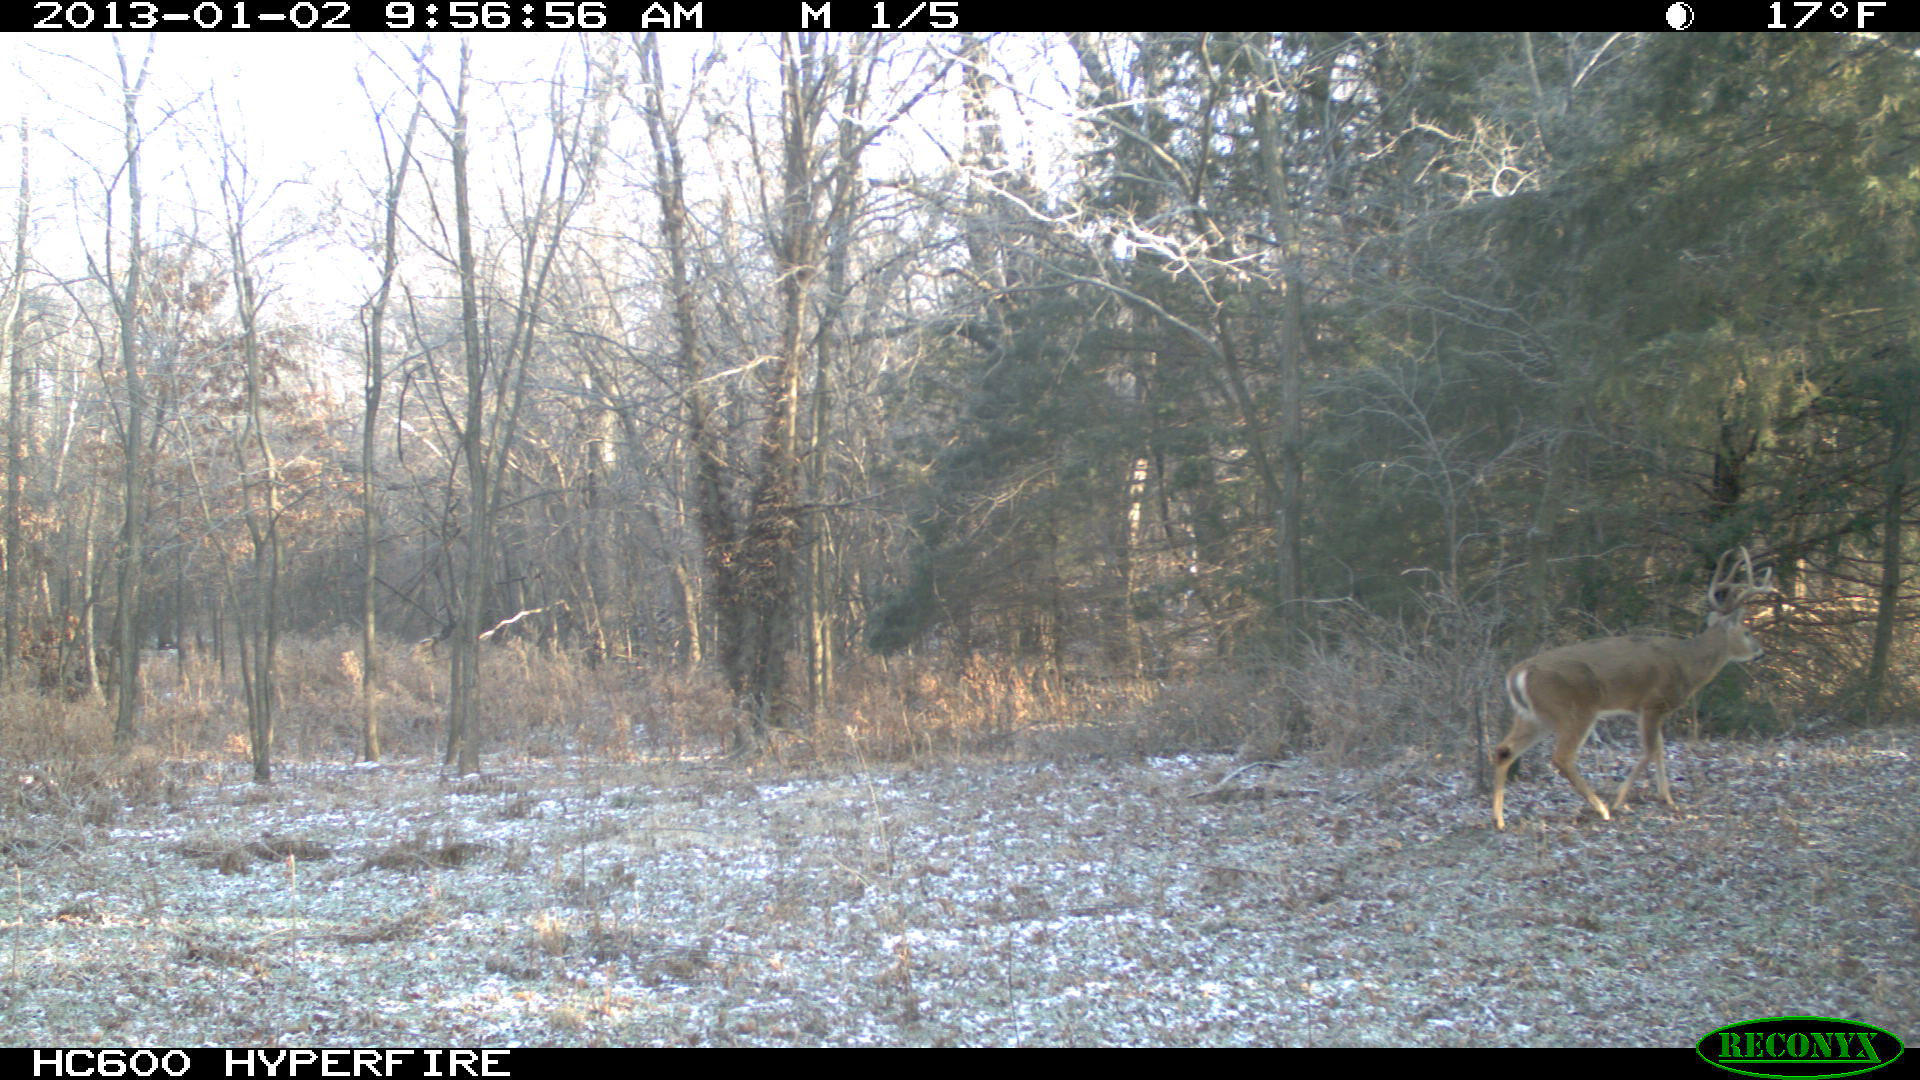 We found both sheds to the buck in this picture